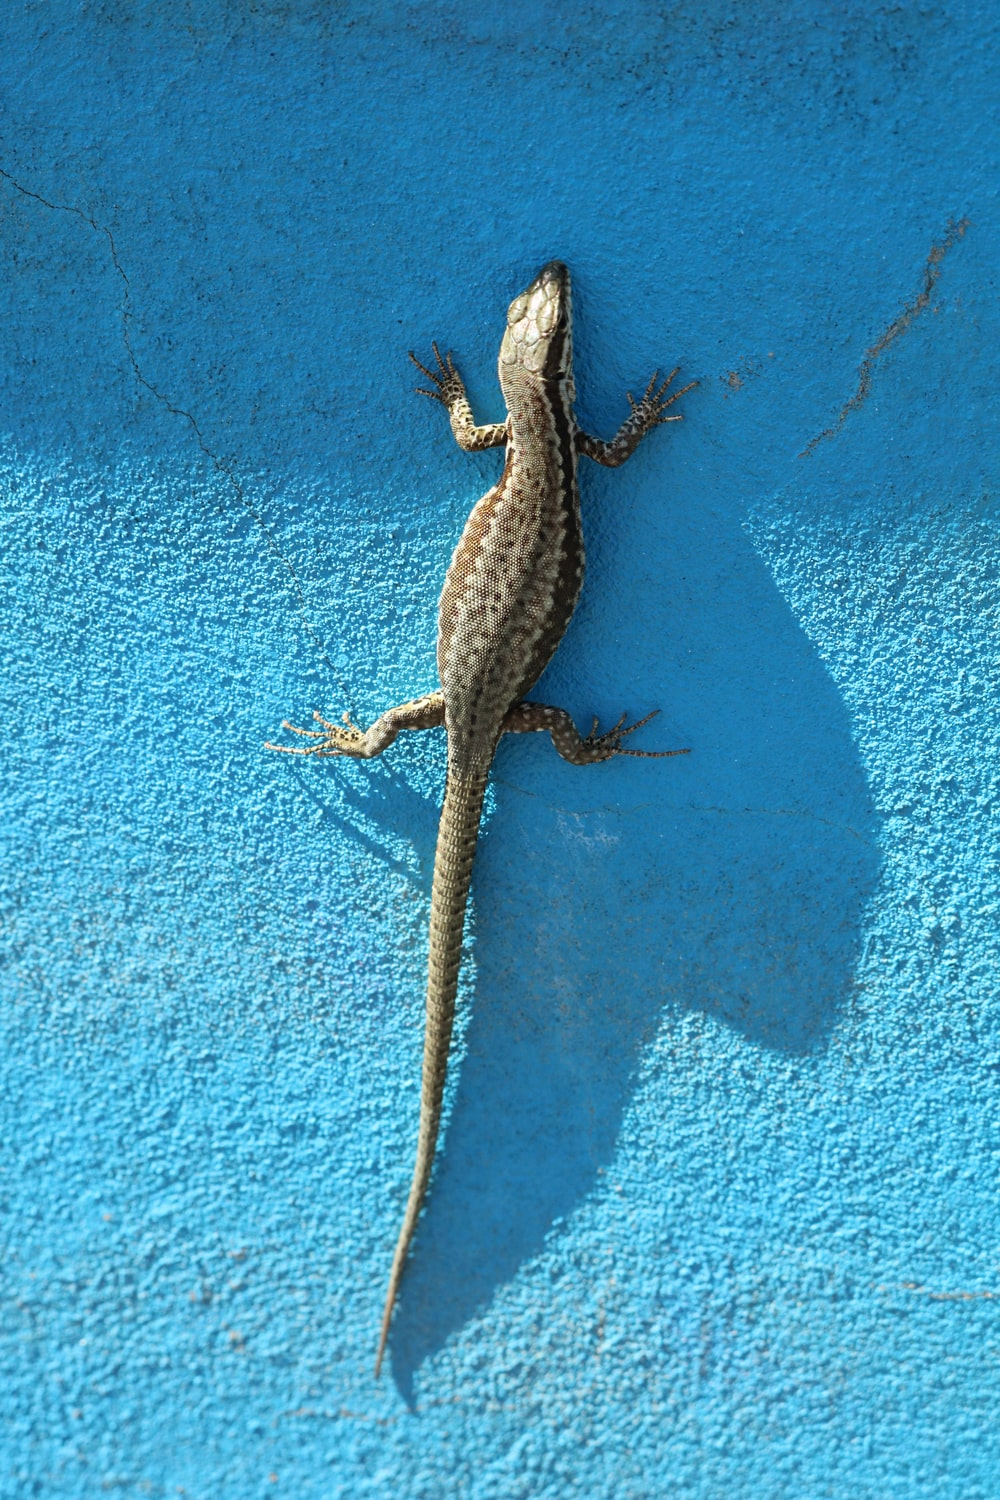 brown and black lizard on blue painted wall